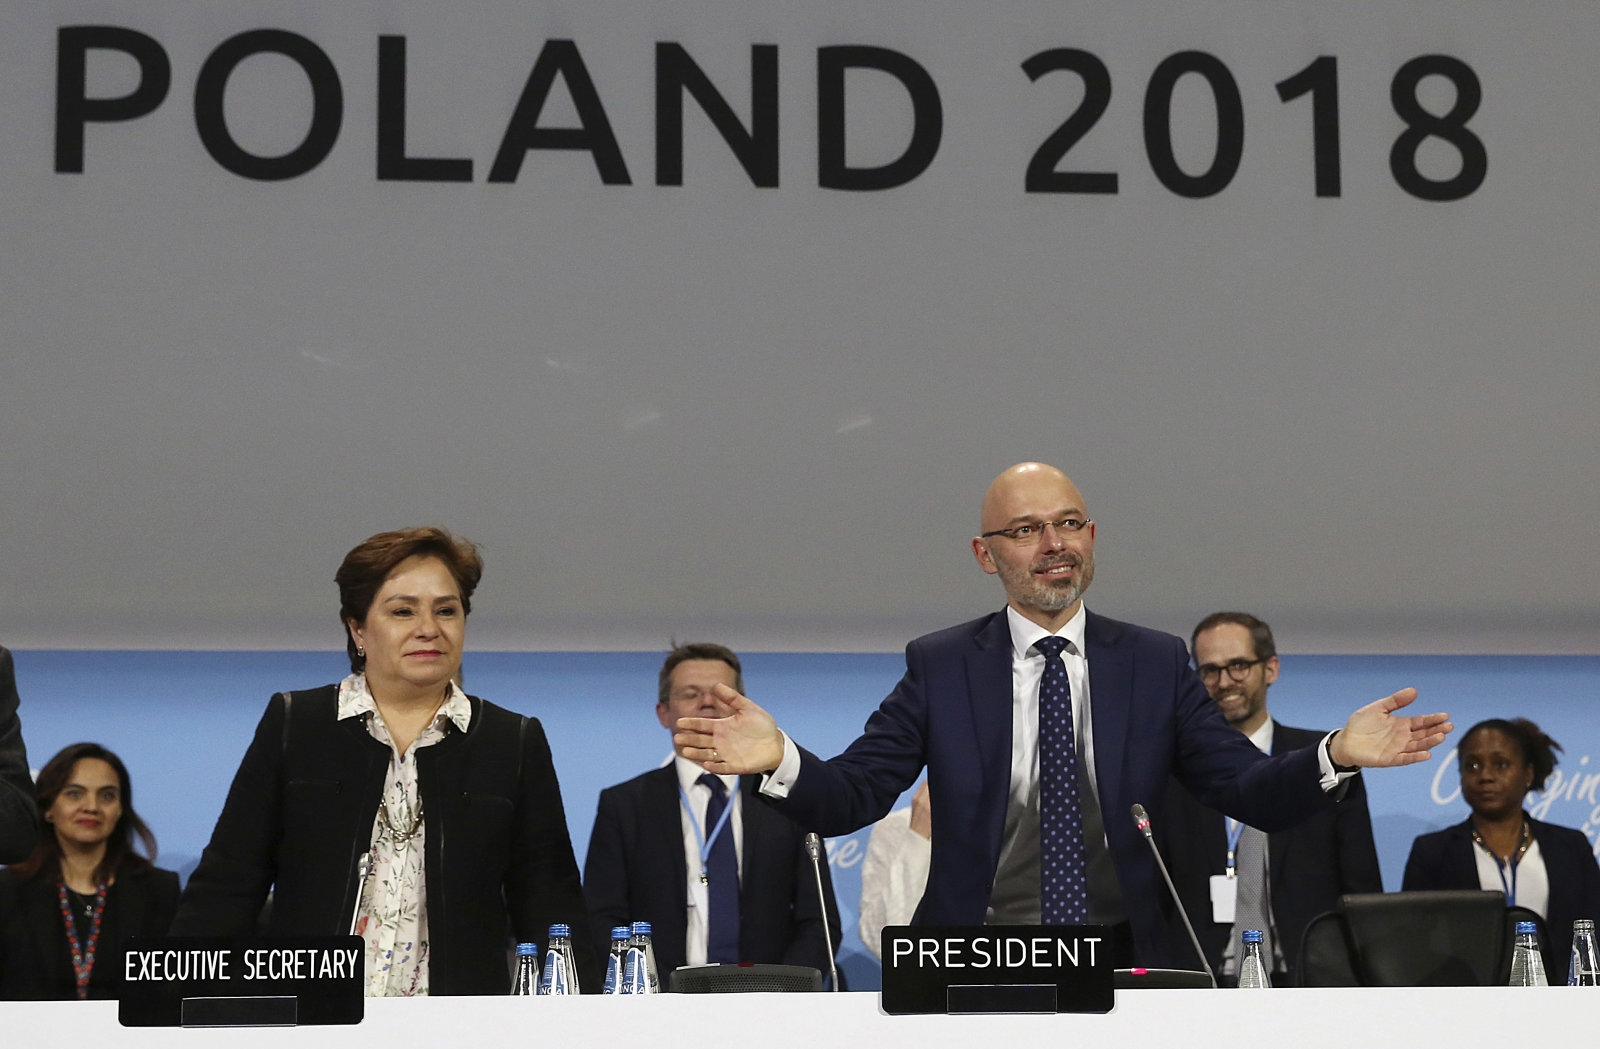 Governments reach deal to implement Paris climate change agreement | DeviceDaily.com